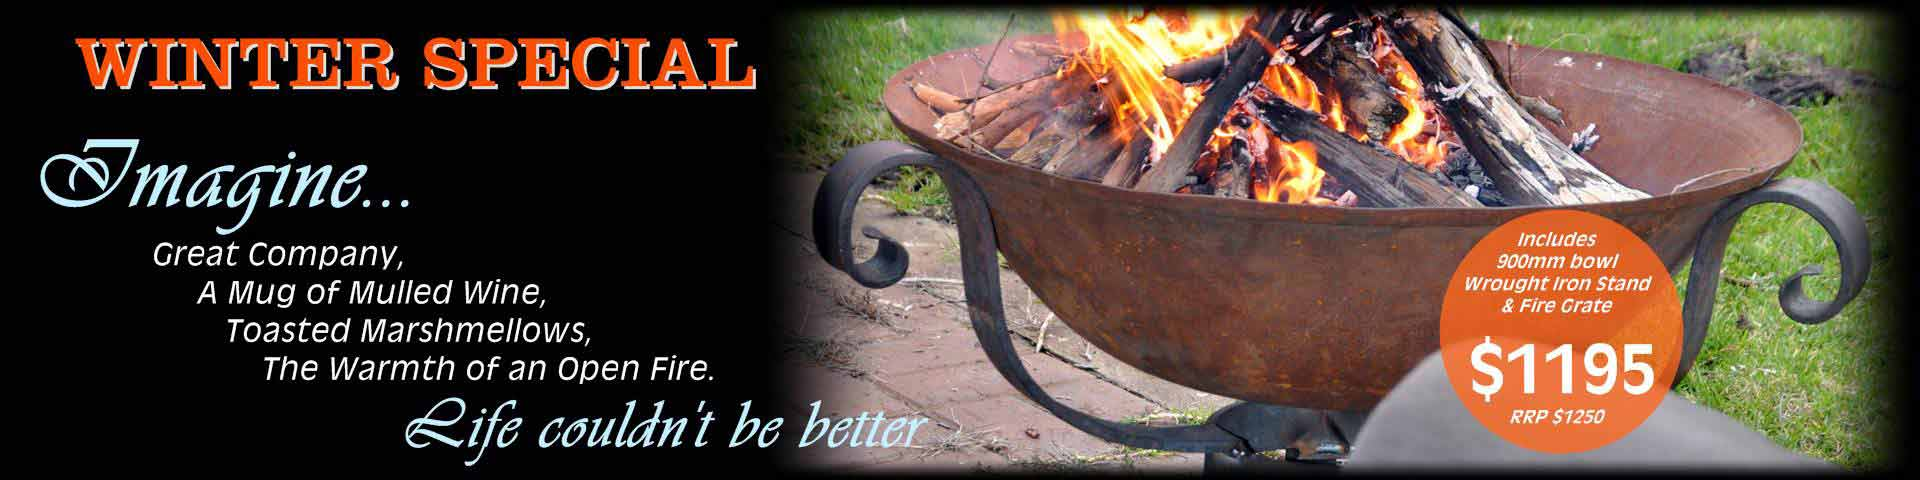 Winter special 2015 on the 900mm fire bowl and wrought iron stand includes a fire grate for only $1195. Regular price $1350.